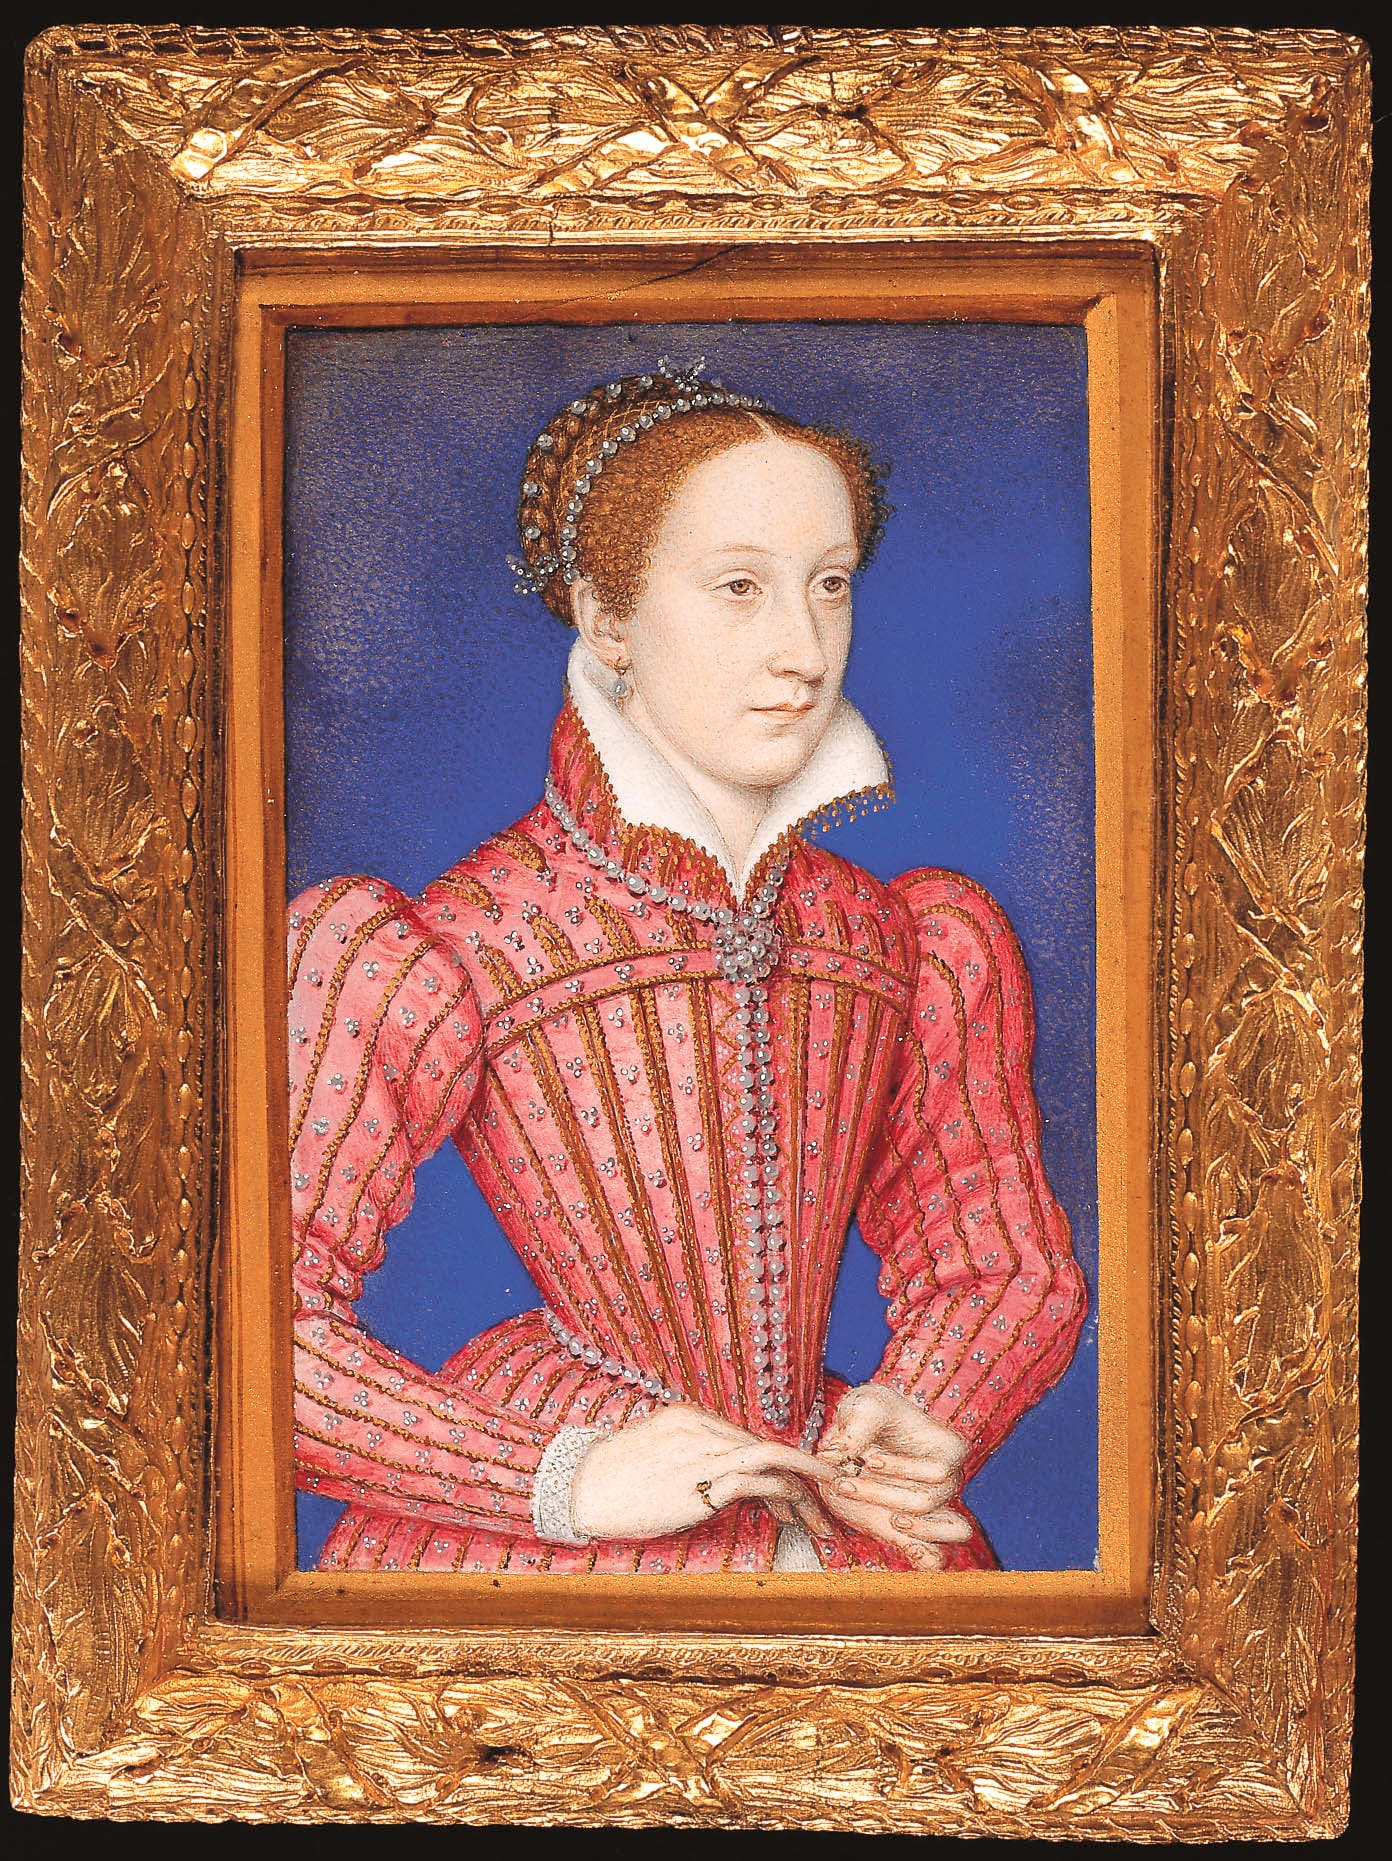 Mary, Queen of Scots, (1558), Francis Clouet, Royal Collection Trust/© Her Majesty Queen Elizabeth II 2017